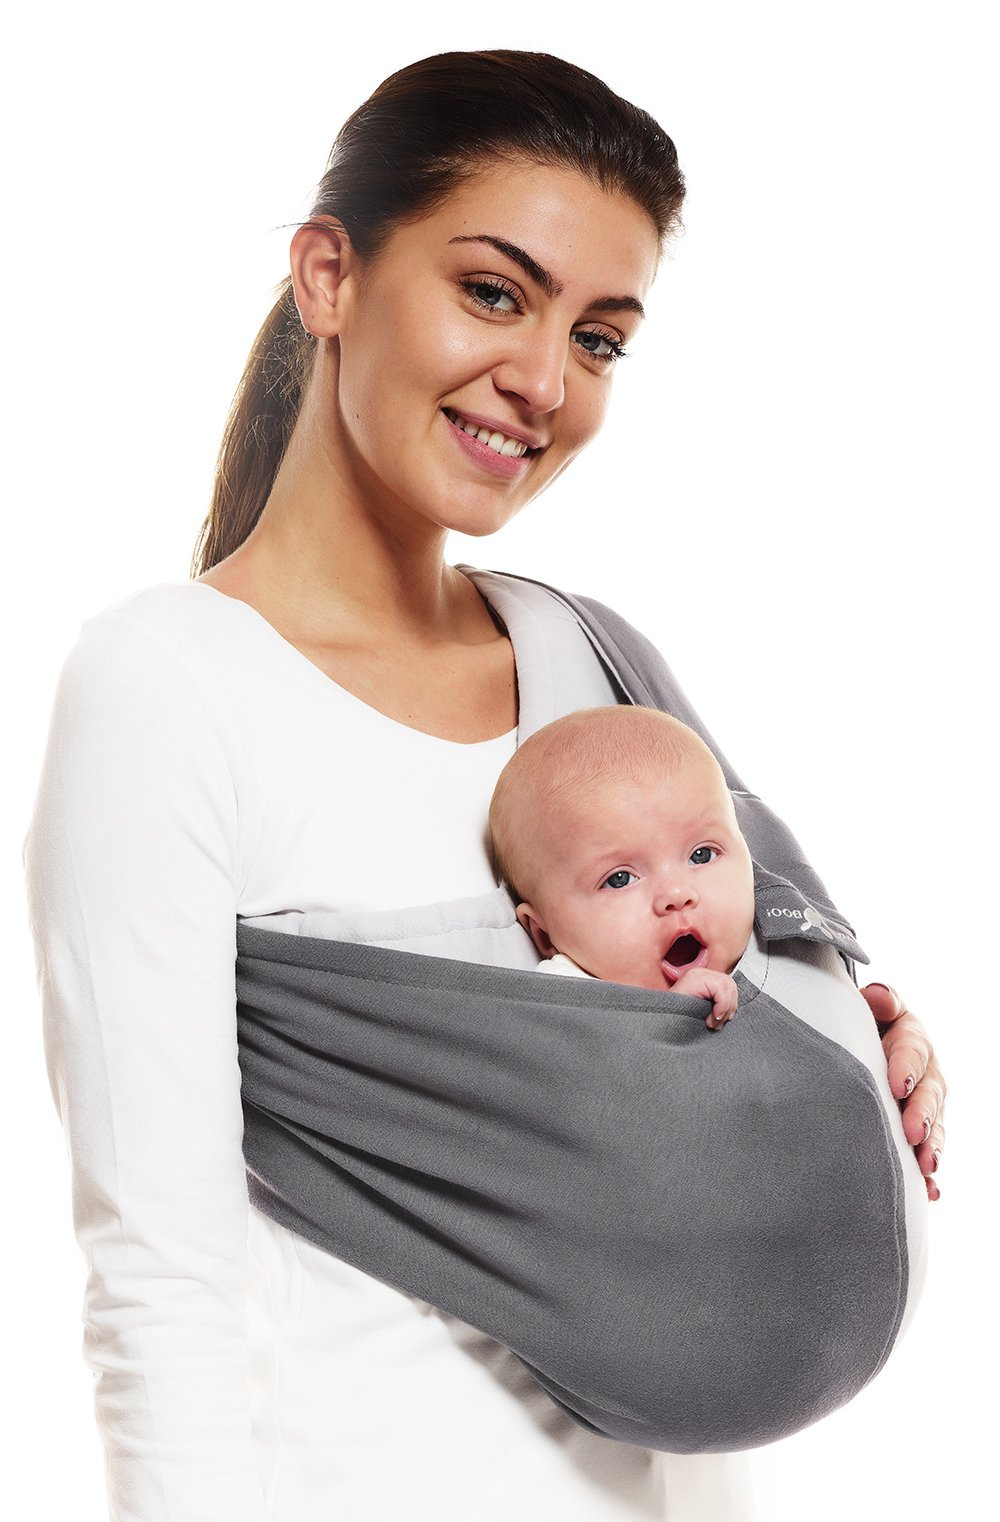 Wallaboo Wrap Sling Carrier Connection, Easy Adjustable, Ergonomic, 3 Carrying Positions, Newborn 8lbs to 33 lbs, Soft Breathable Cotton, 3 Sitting Positions, EU Safety Tested, Color: Grey / Silver Wallaboo Ergonomically correct design with three natural positions: sleep, sit and active- one size fits all Can be used from premature baby through to 33lbs - with easy-to-use features like a full-front opening and an adjustable back Single piece of fabric, no straps, belts or buckles - partly padded to give extra comfort- no wrapping, no hardware. ready to wear 2